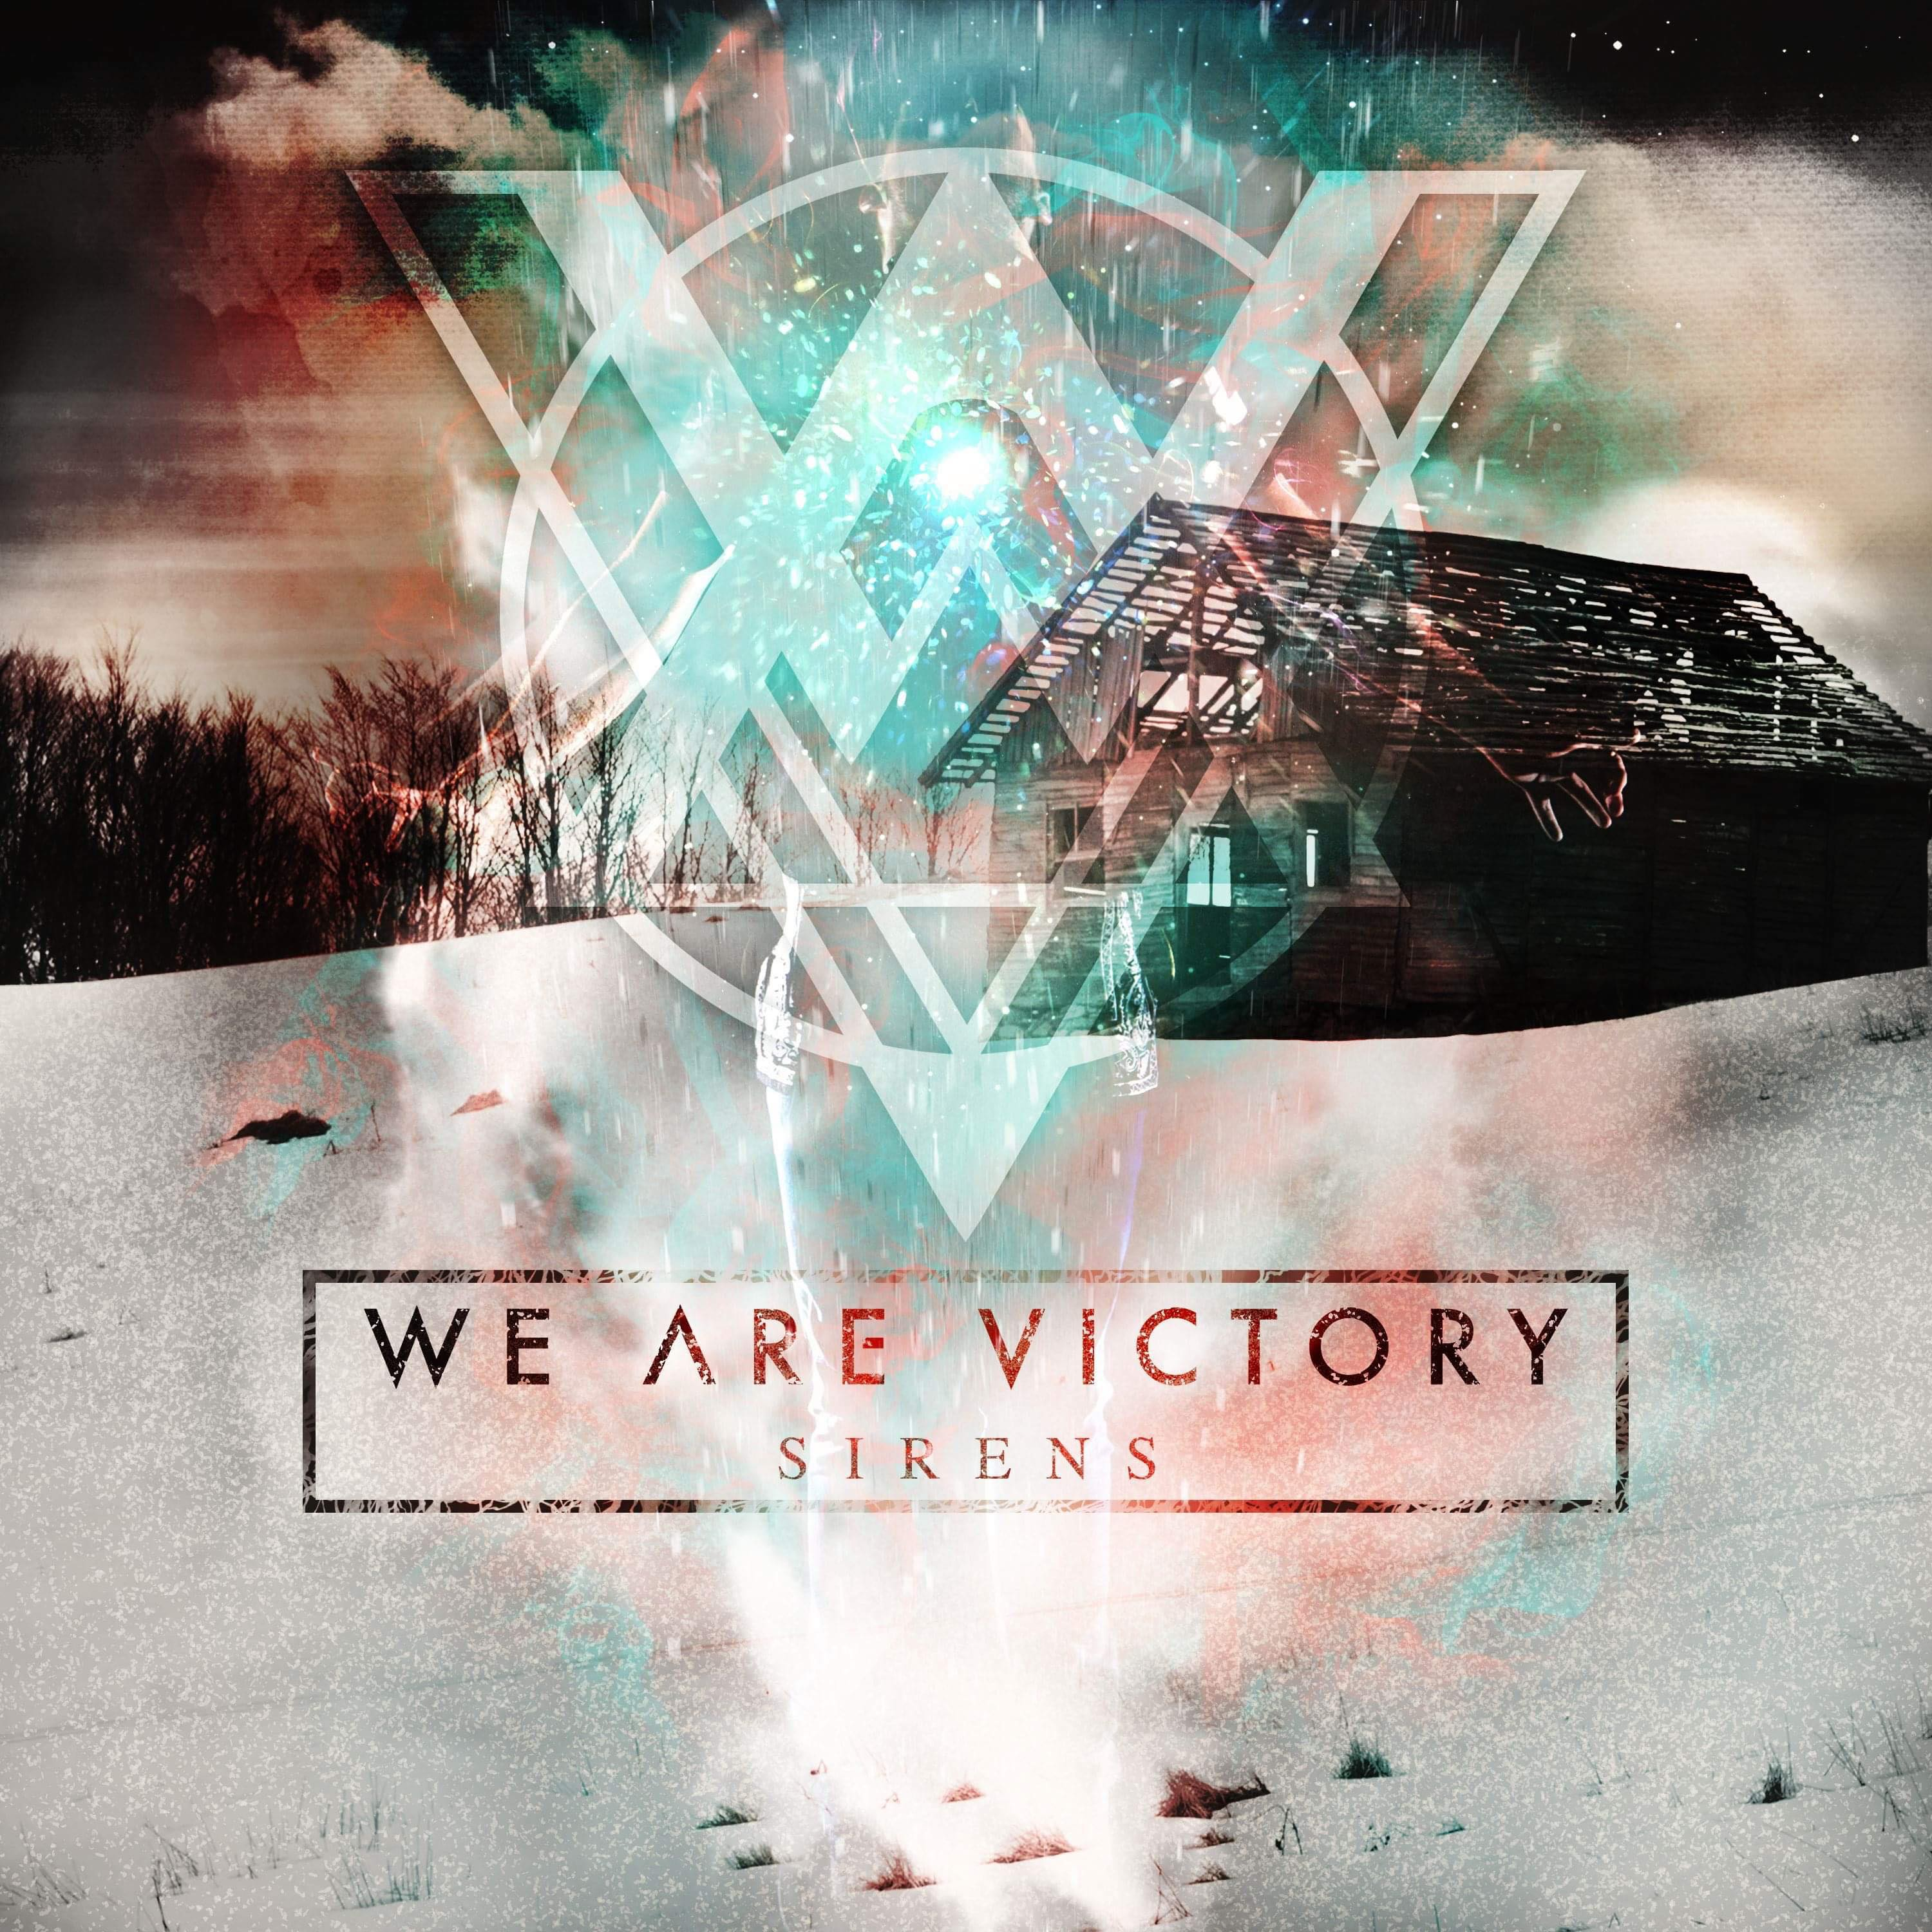 we-are-victory-sirens-frischer-wind-album-review